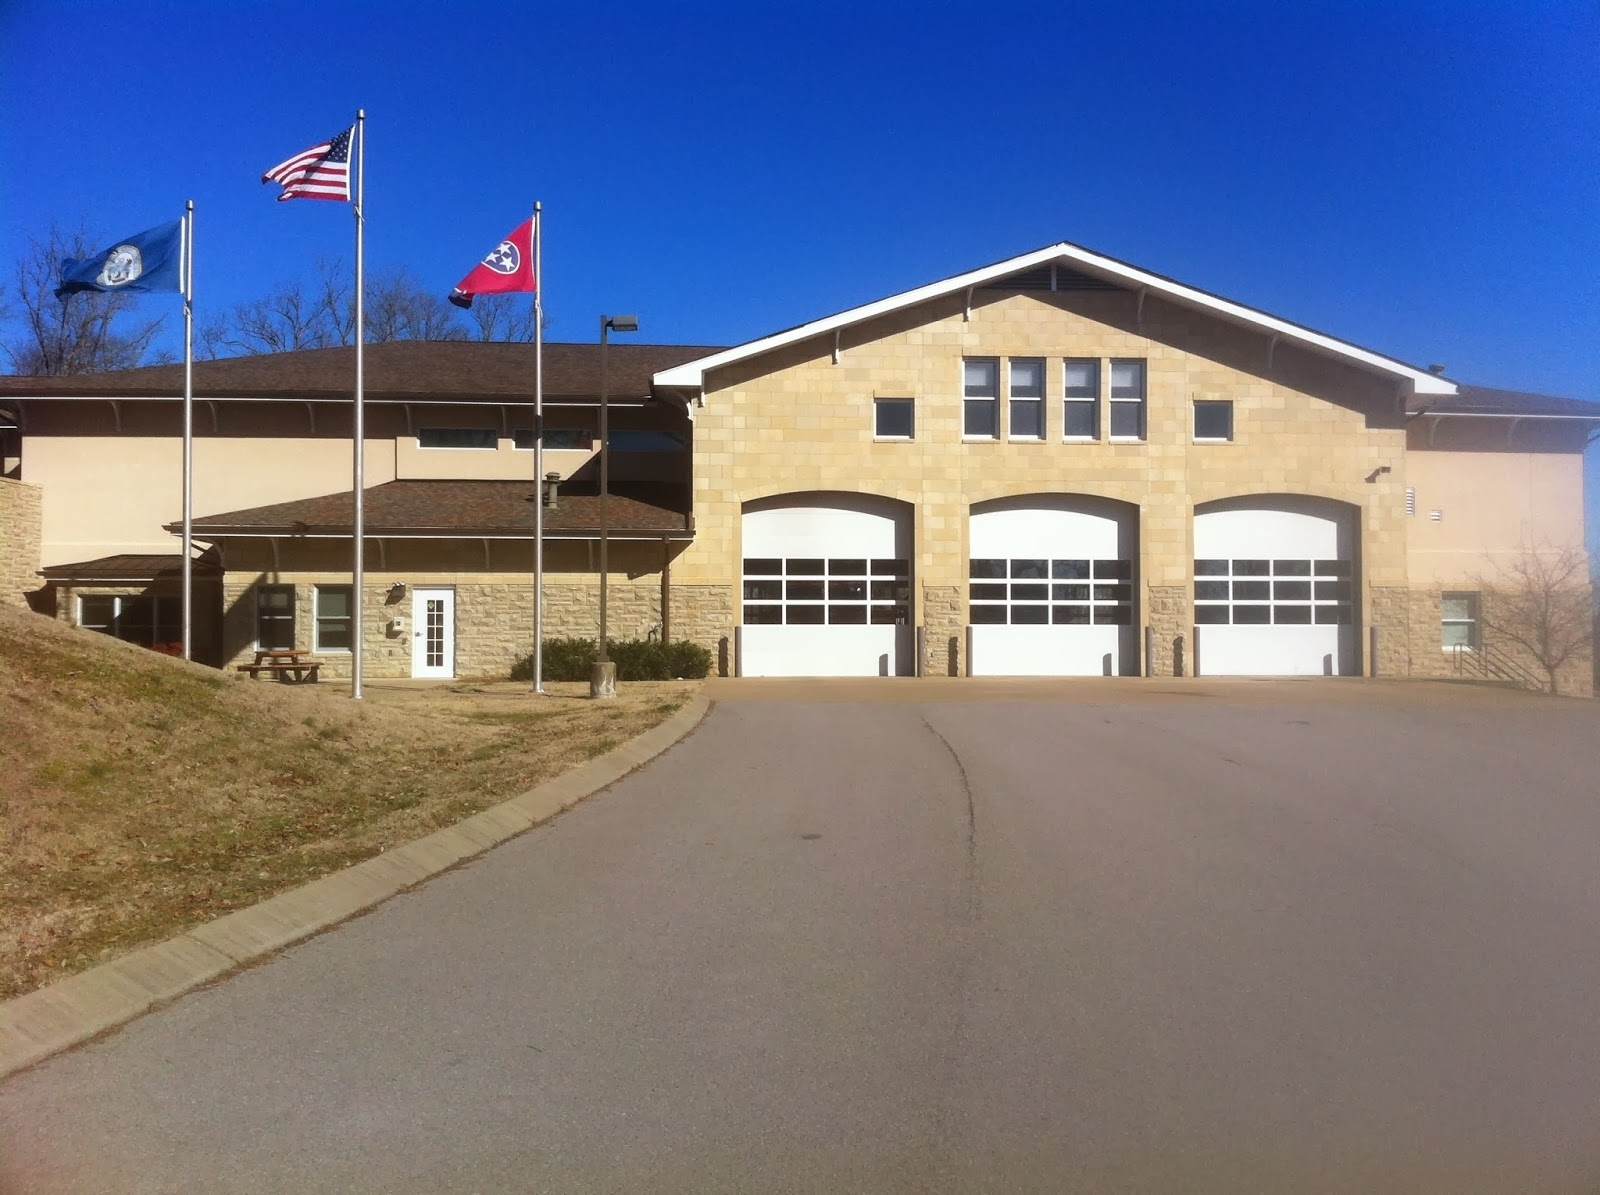 Brentwood Fire And Rescue: Station Life: What Kind Of Schedule Do for 48 Hours Fire Shift Schedule